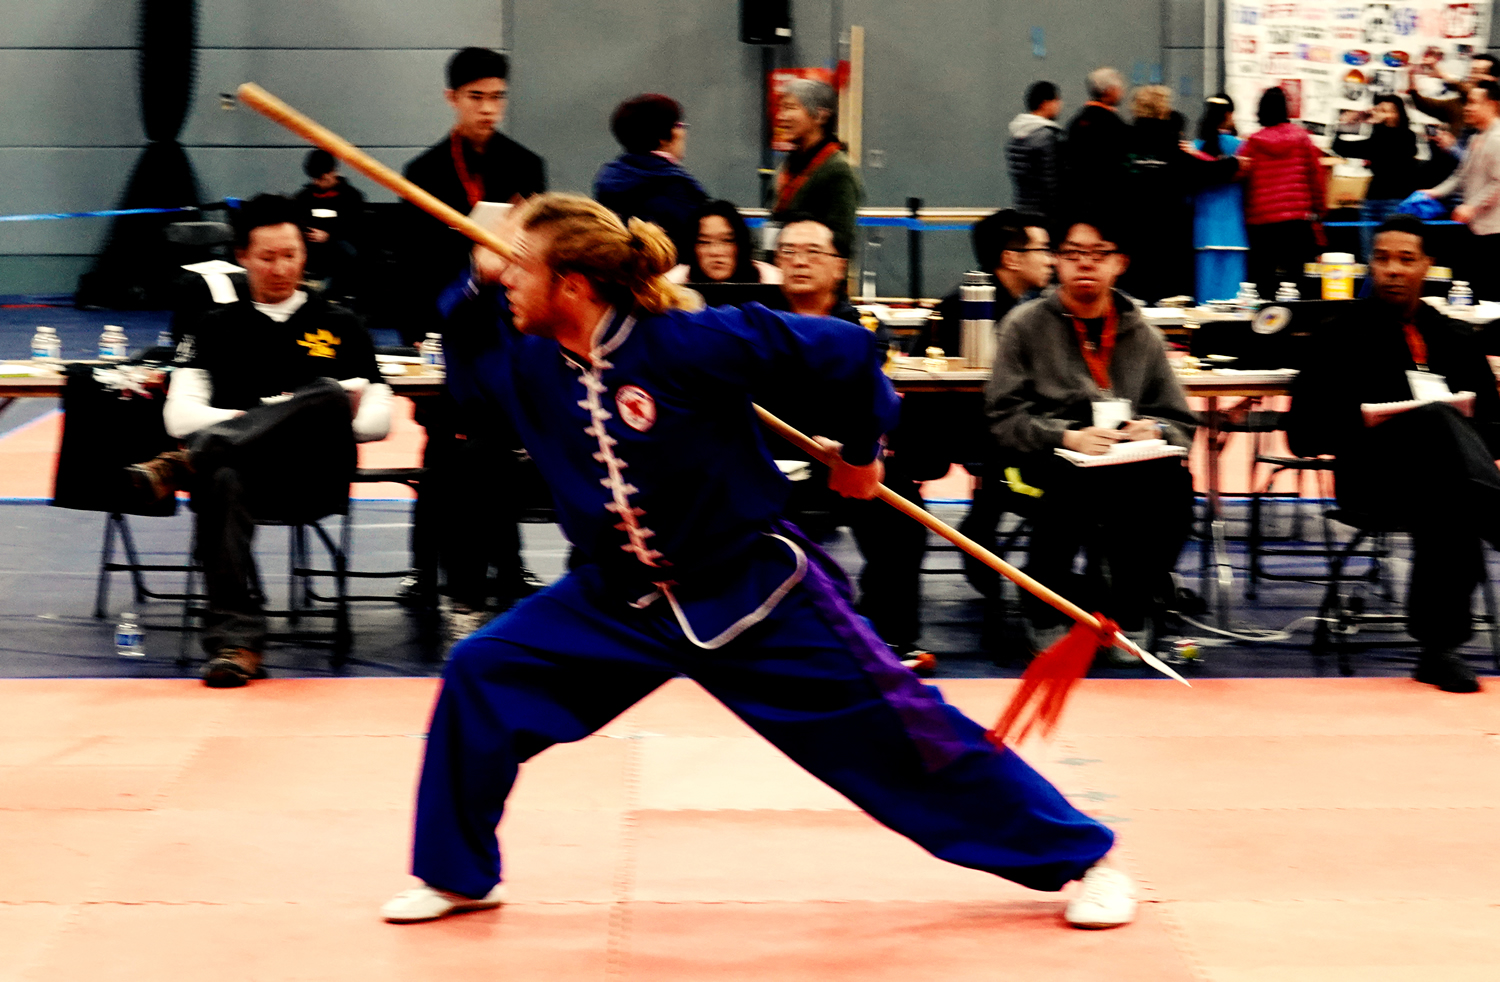 River Rudl performing Rising Block Spear and winning the Gold Medal!